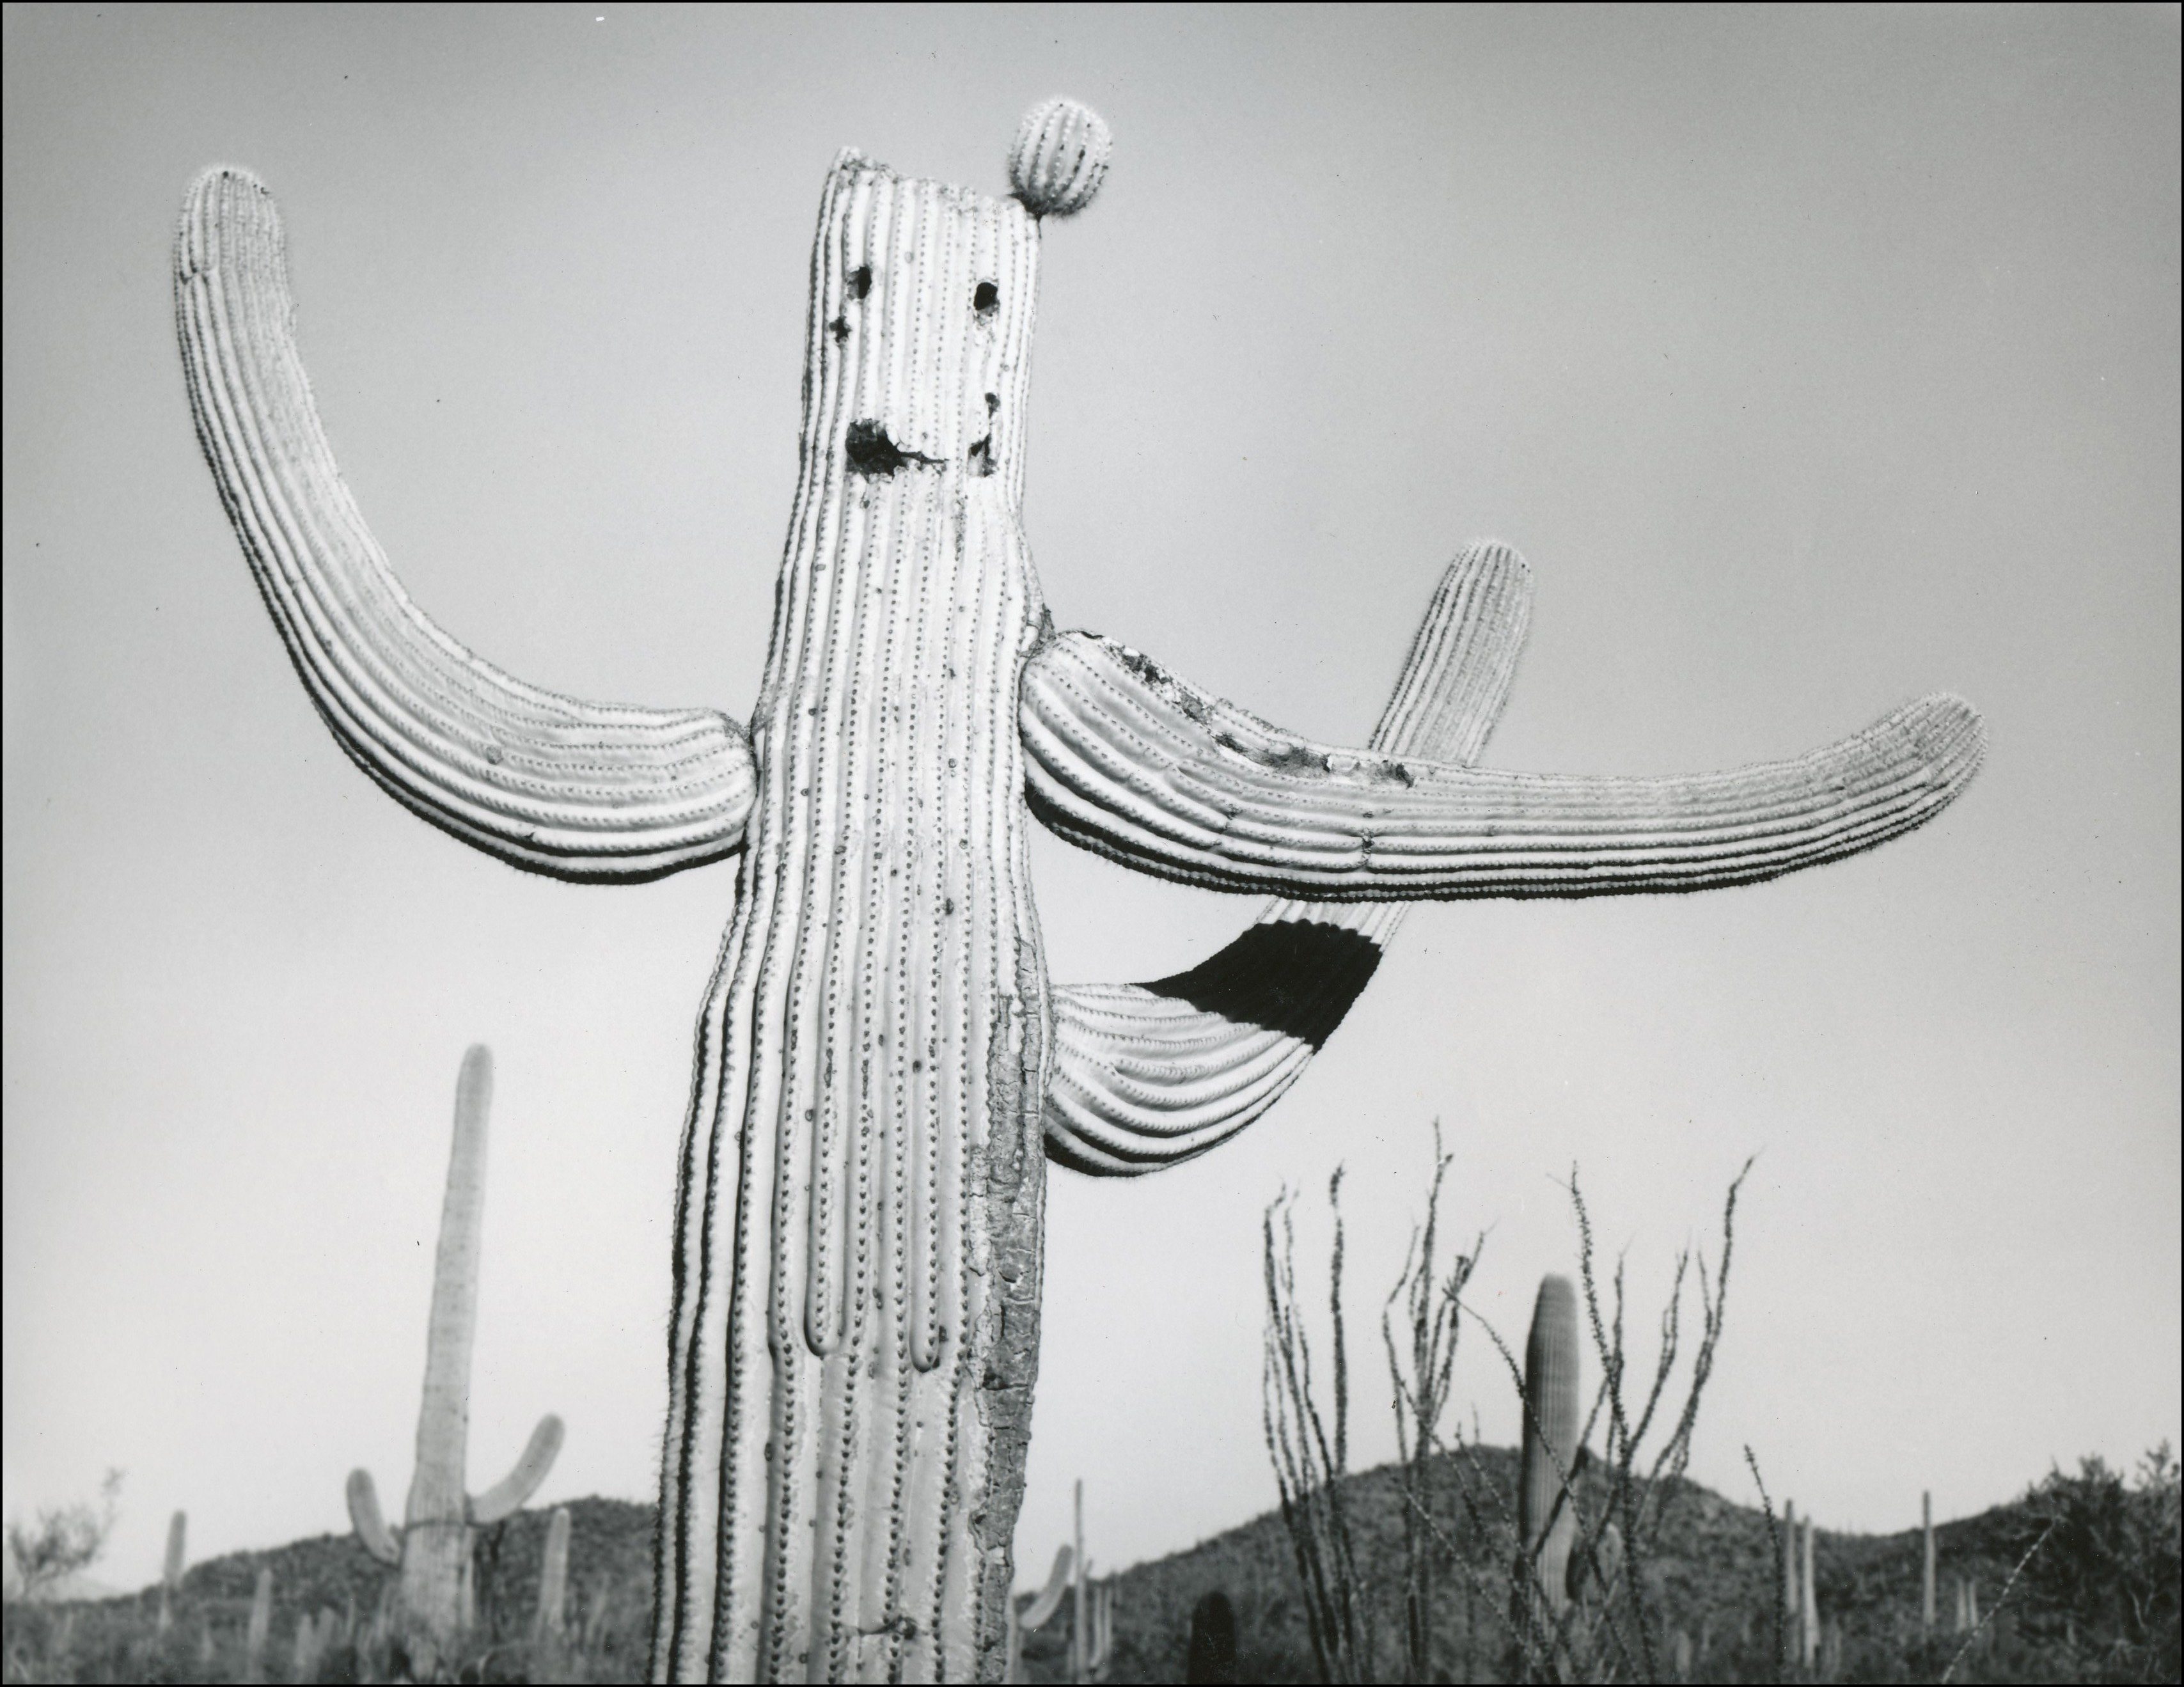 Saguaro cactus with three arms and holes from wood peckers that make a smiley face